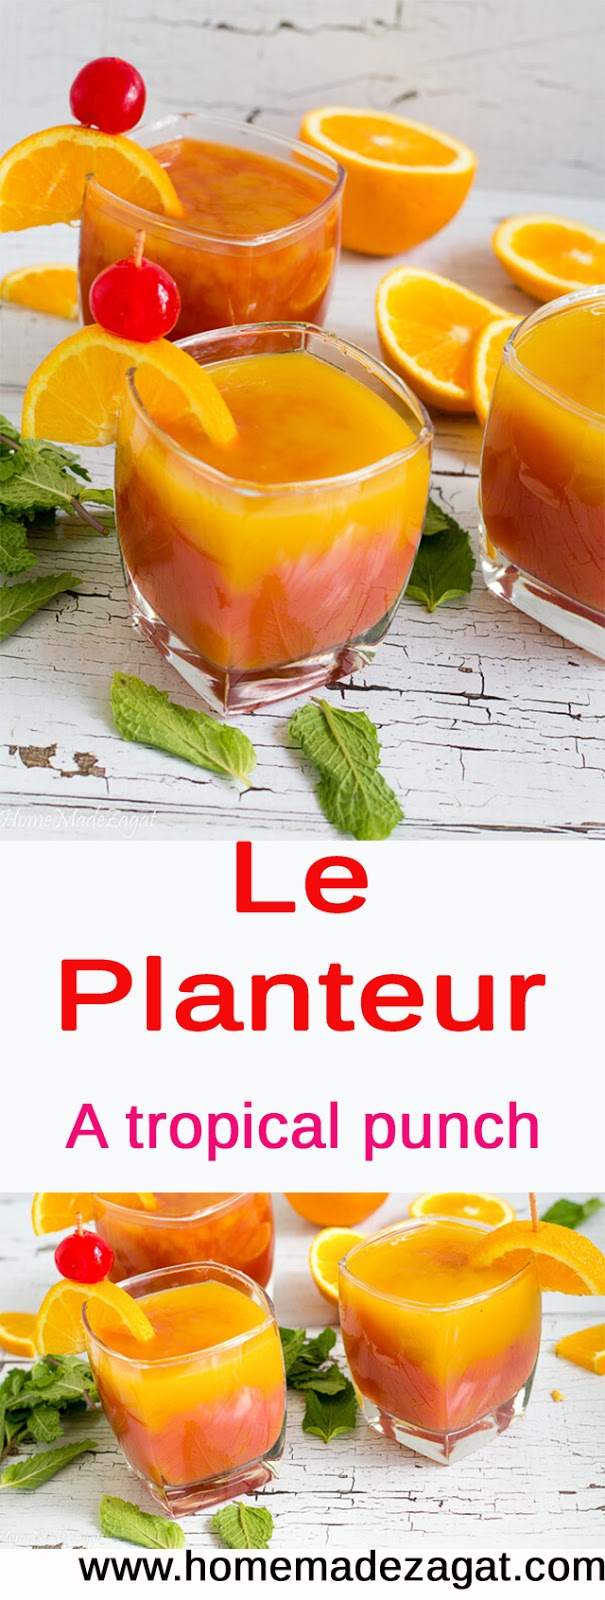 Recipe for Le Planteur